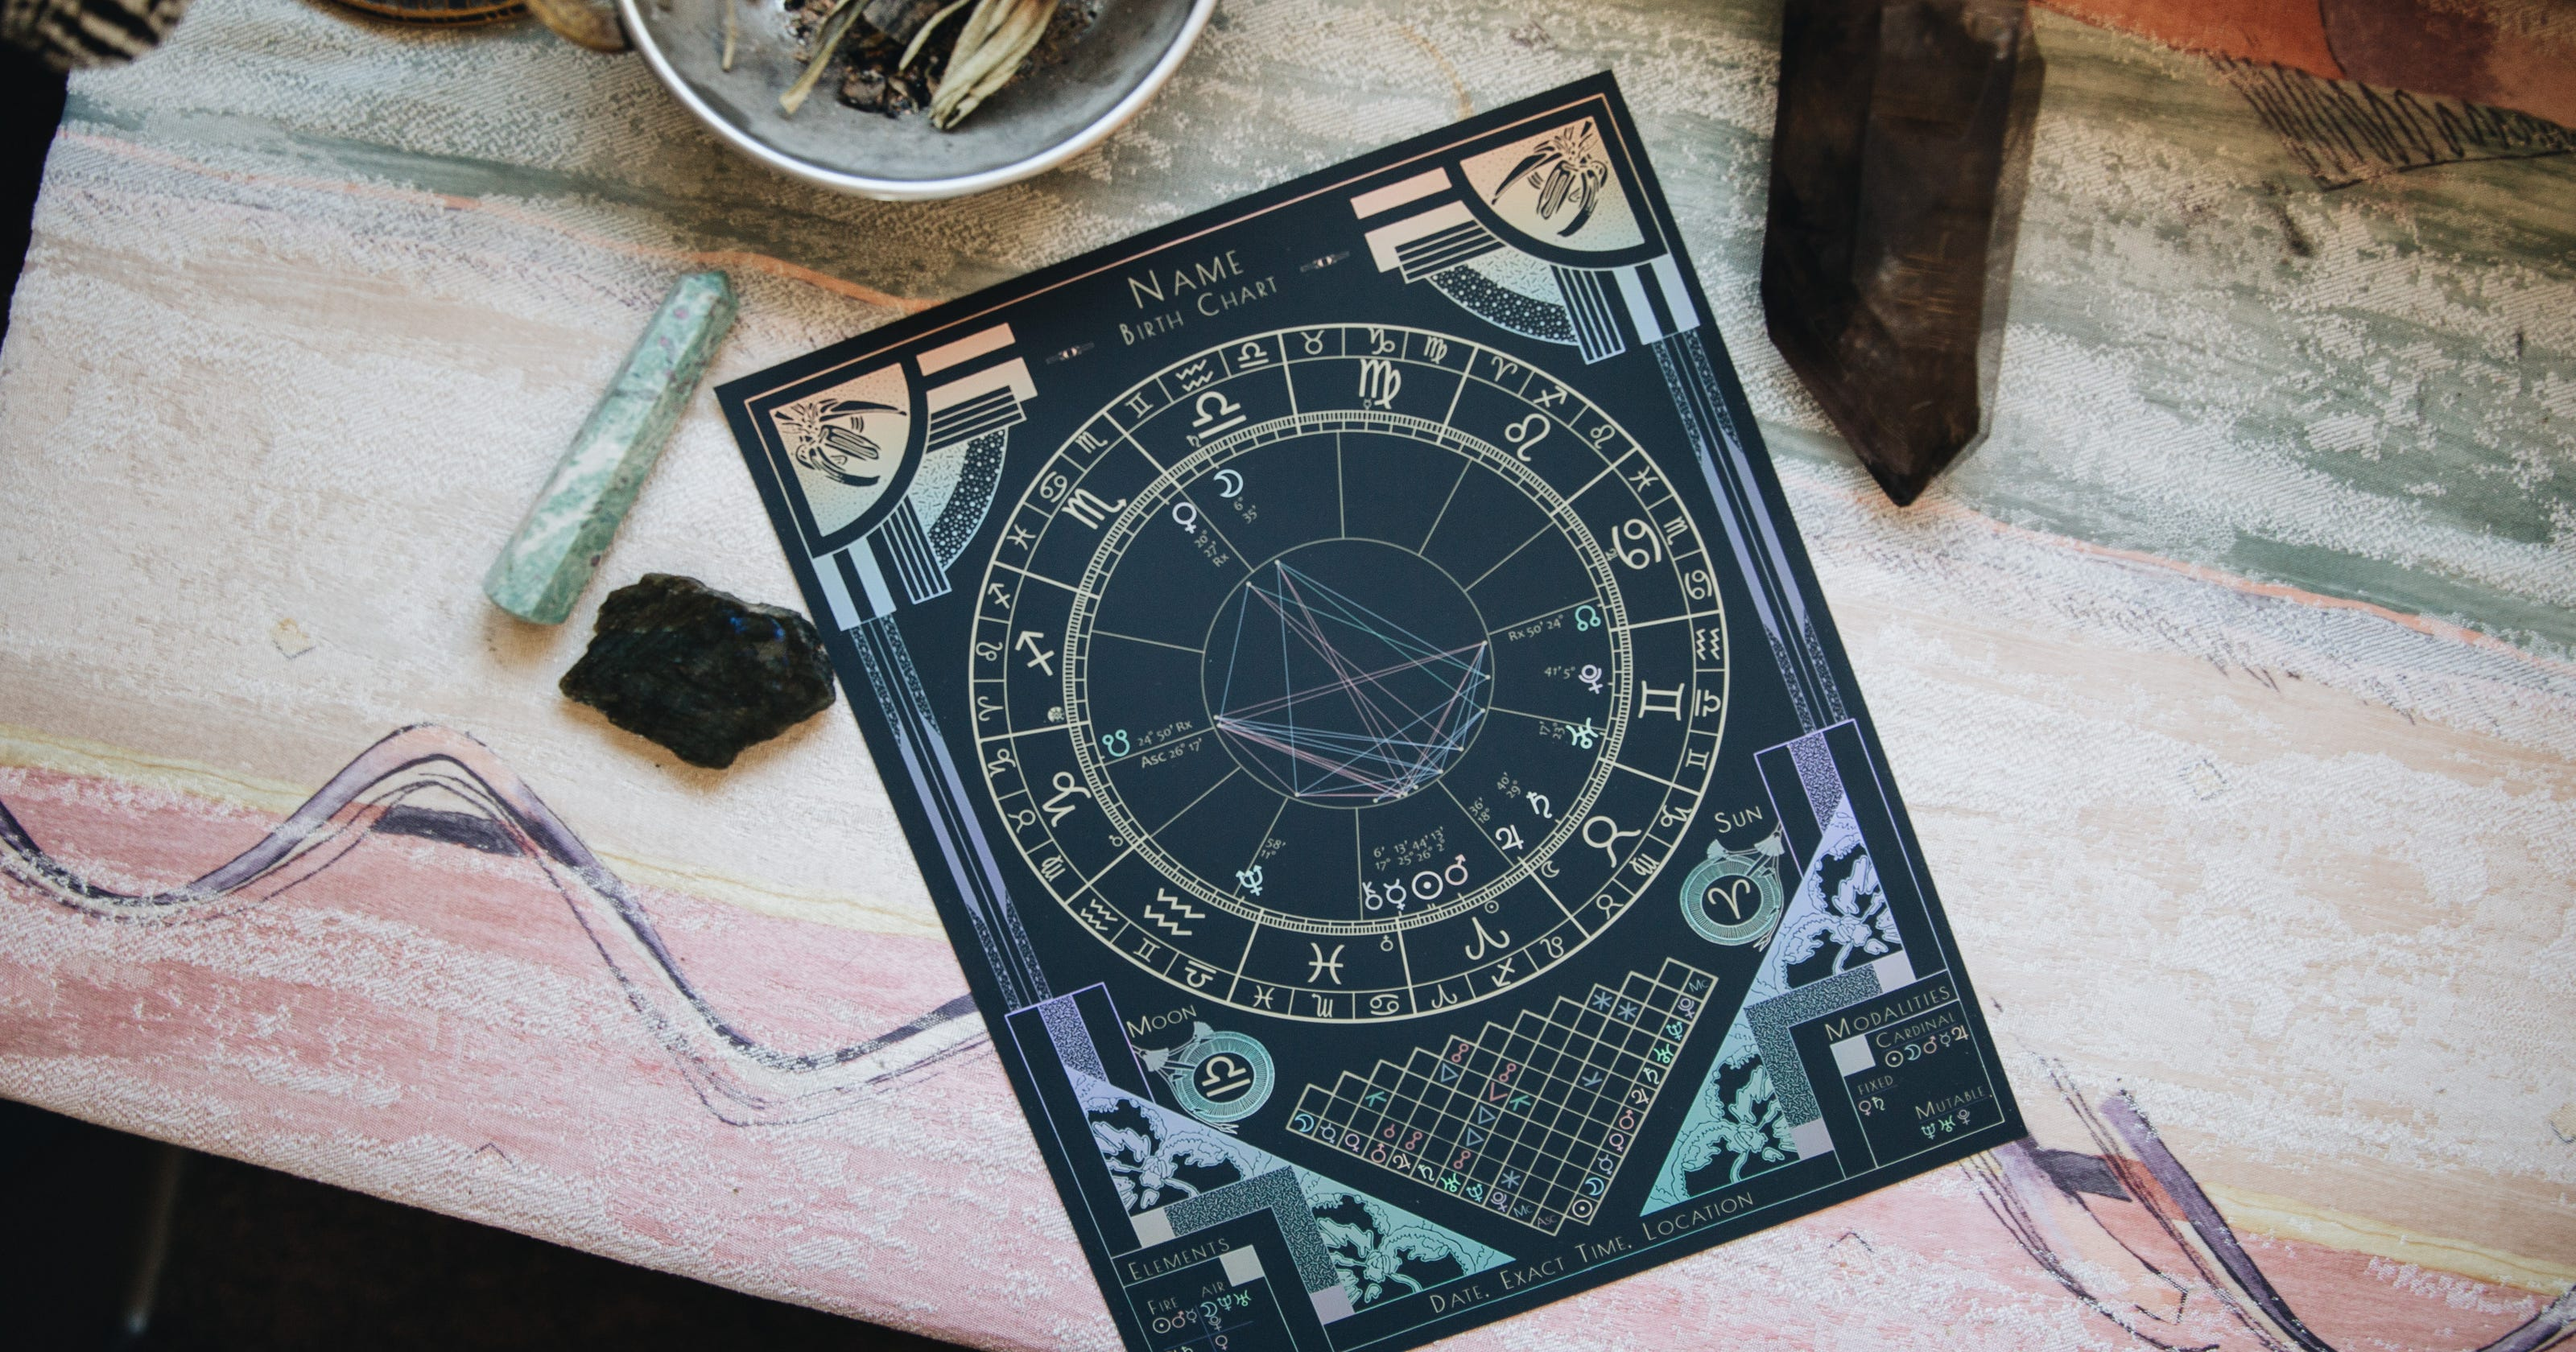 So You Want To Know More About Astrology Heres How You Can Benefit